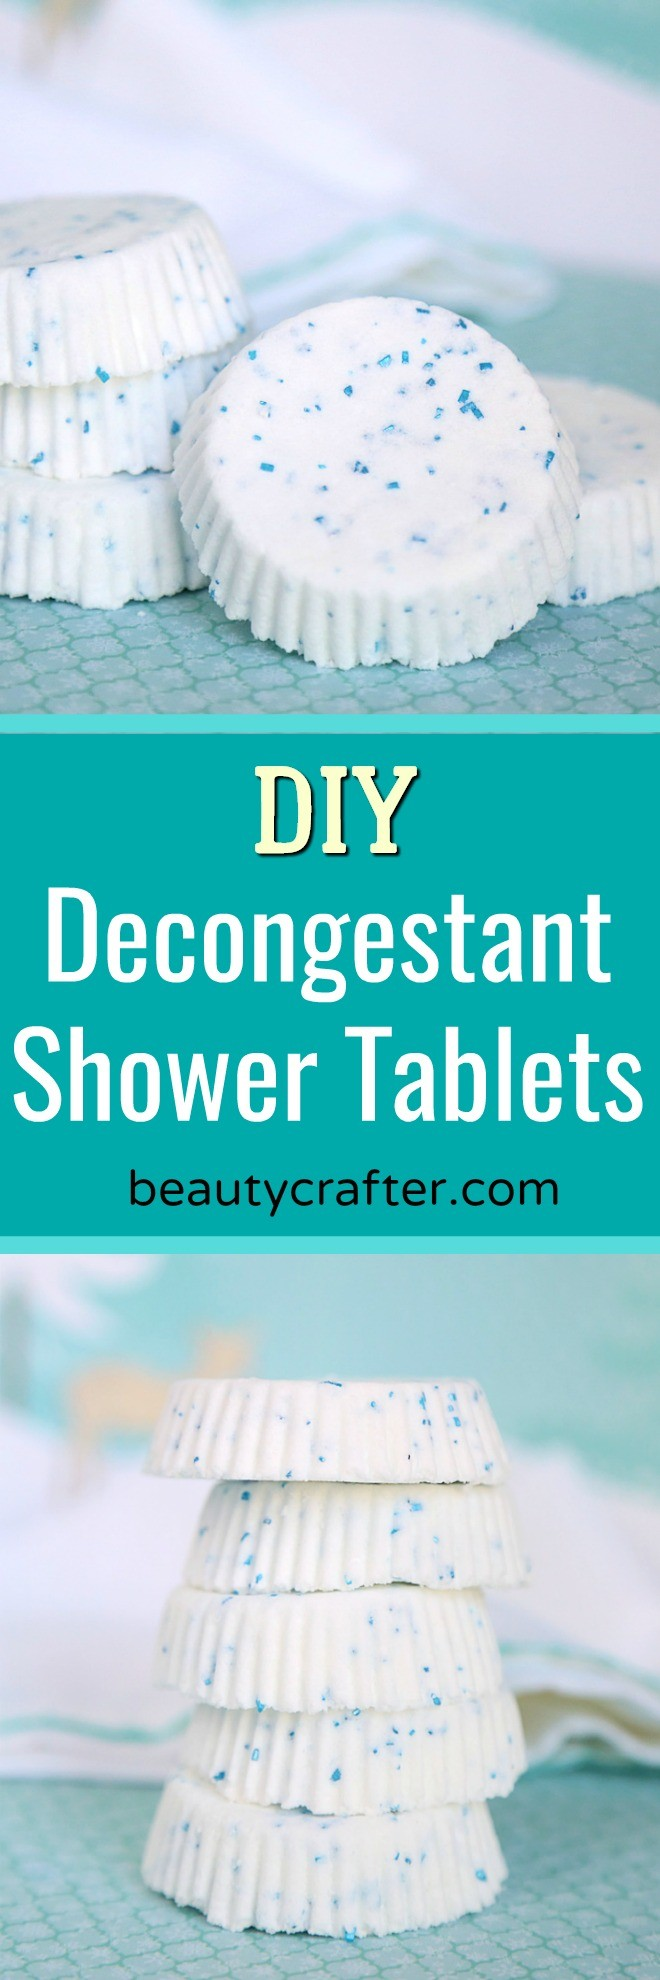 DIY Decongestant Shower Tablets